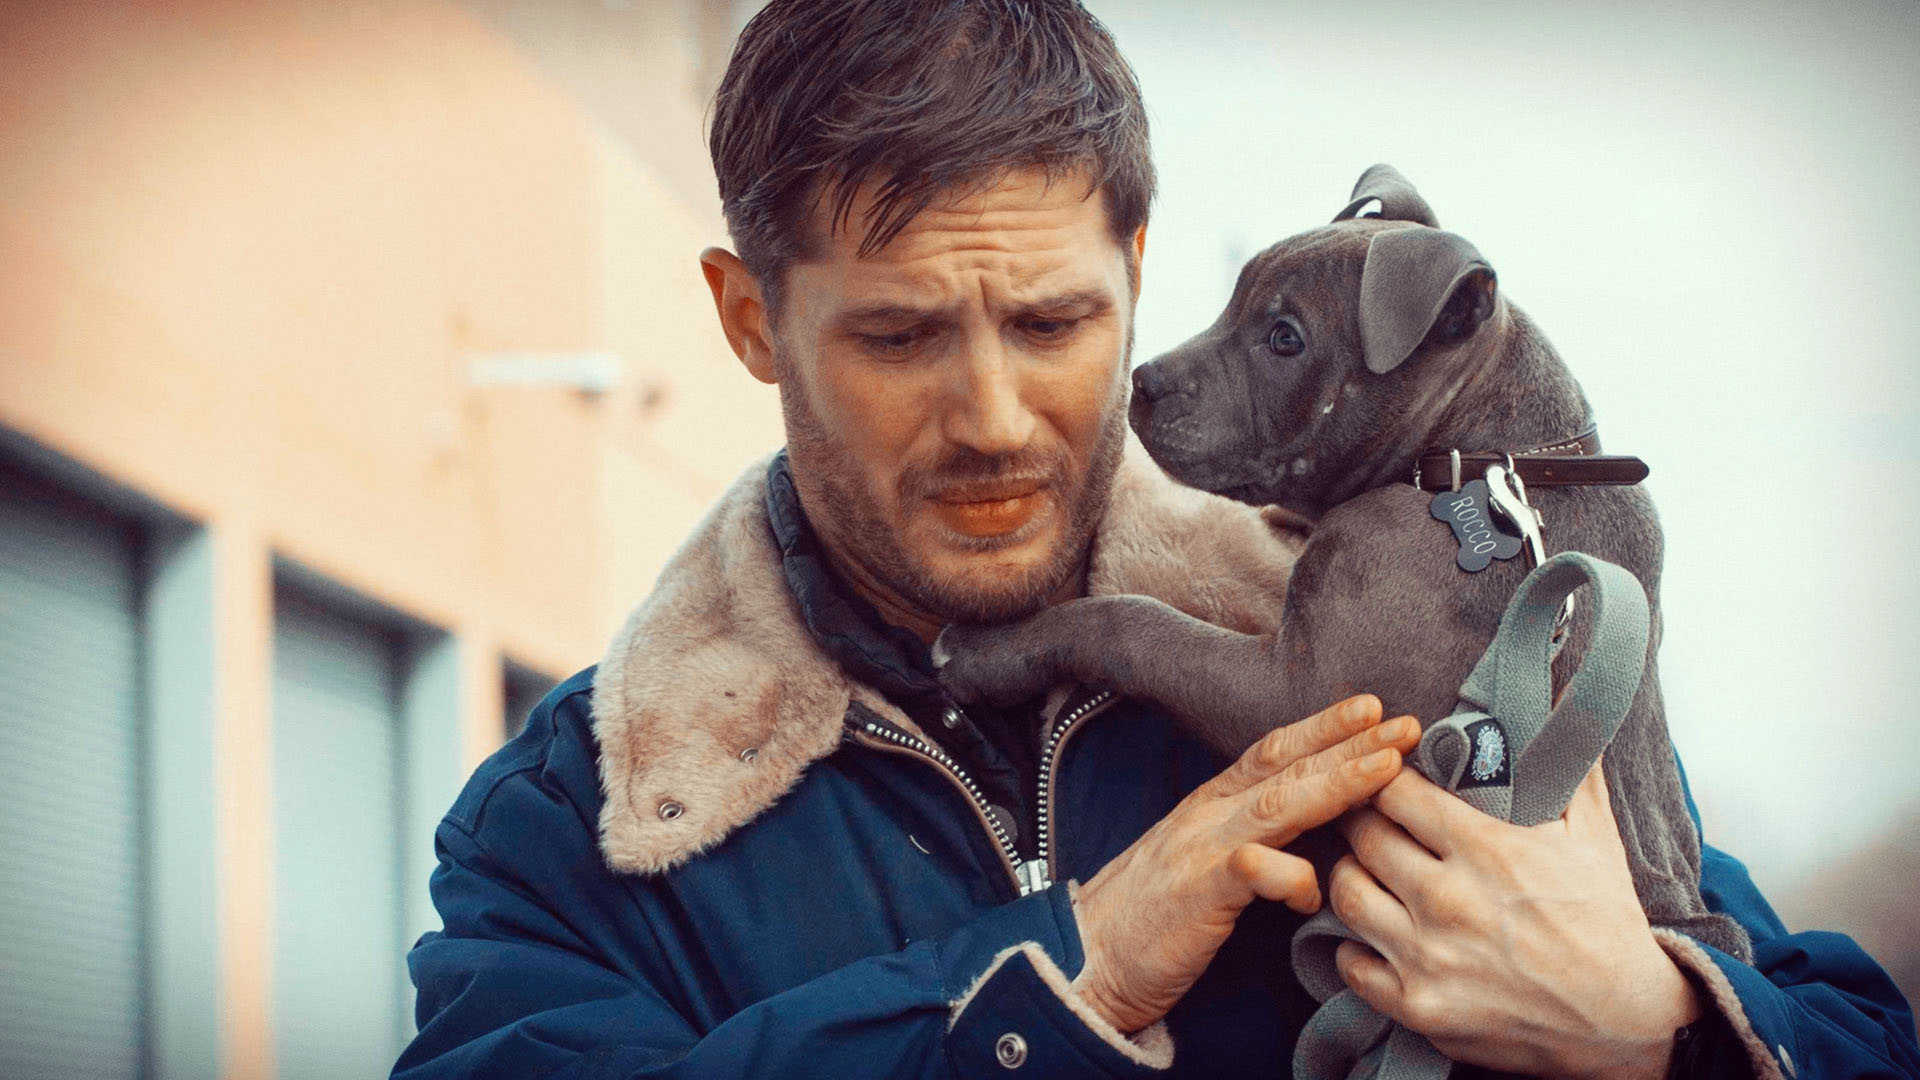 Tom Hardy Wallpapers High Resolution and Quality Download